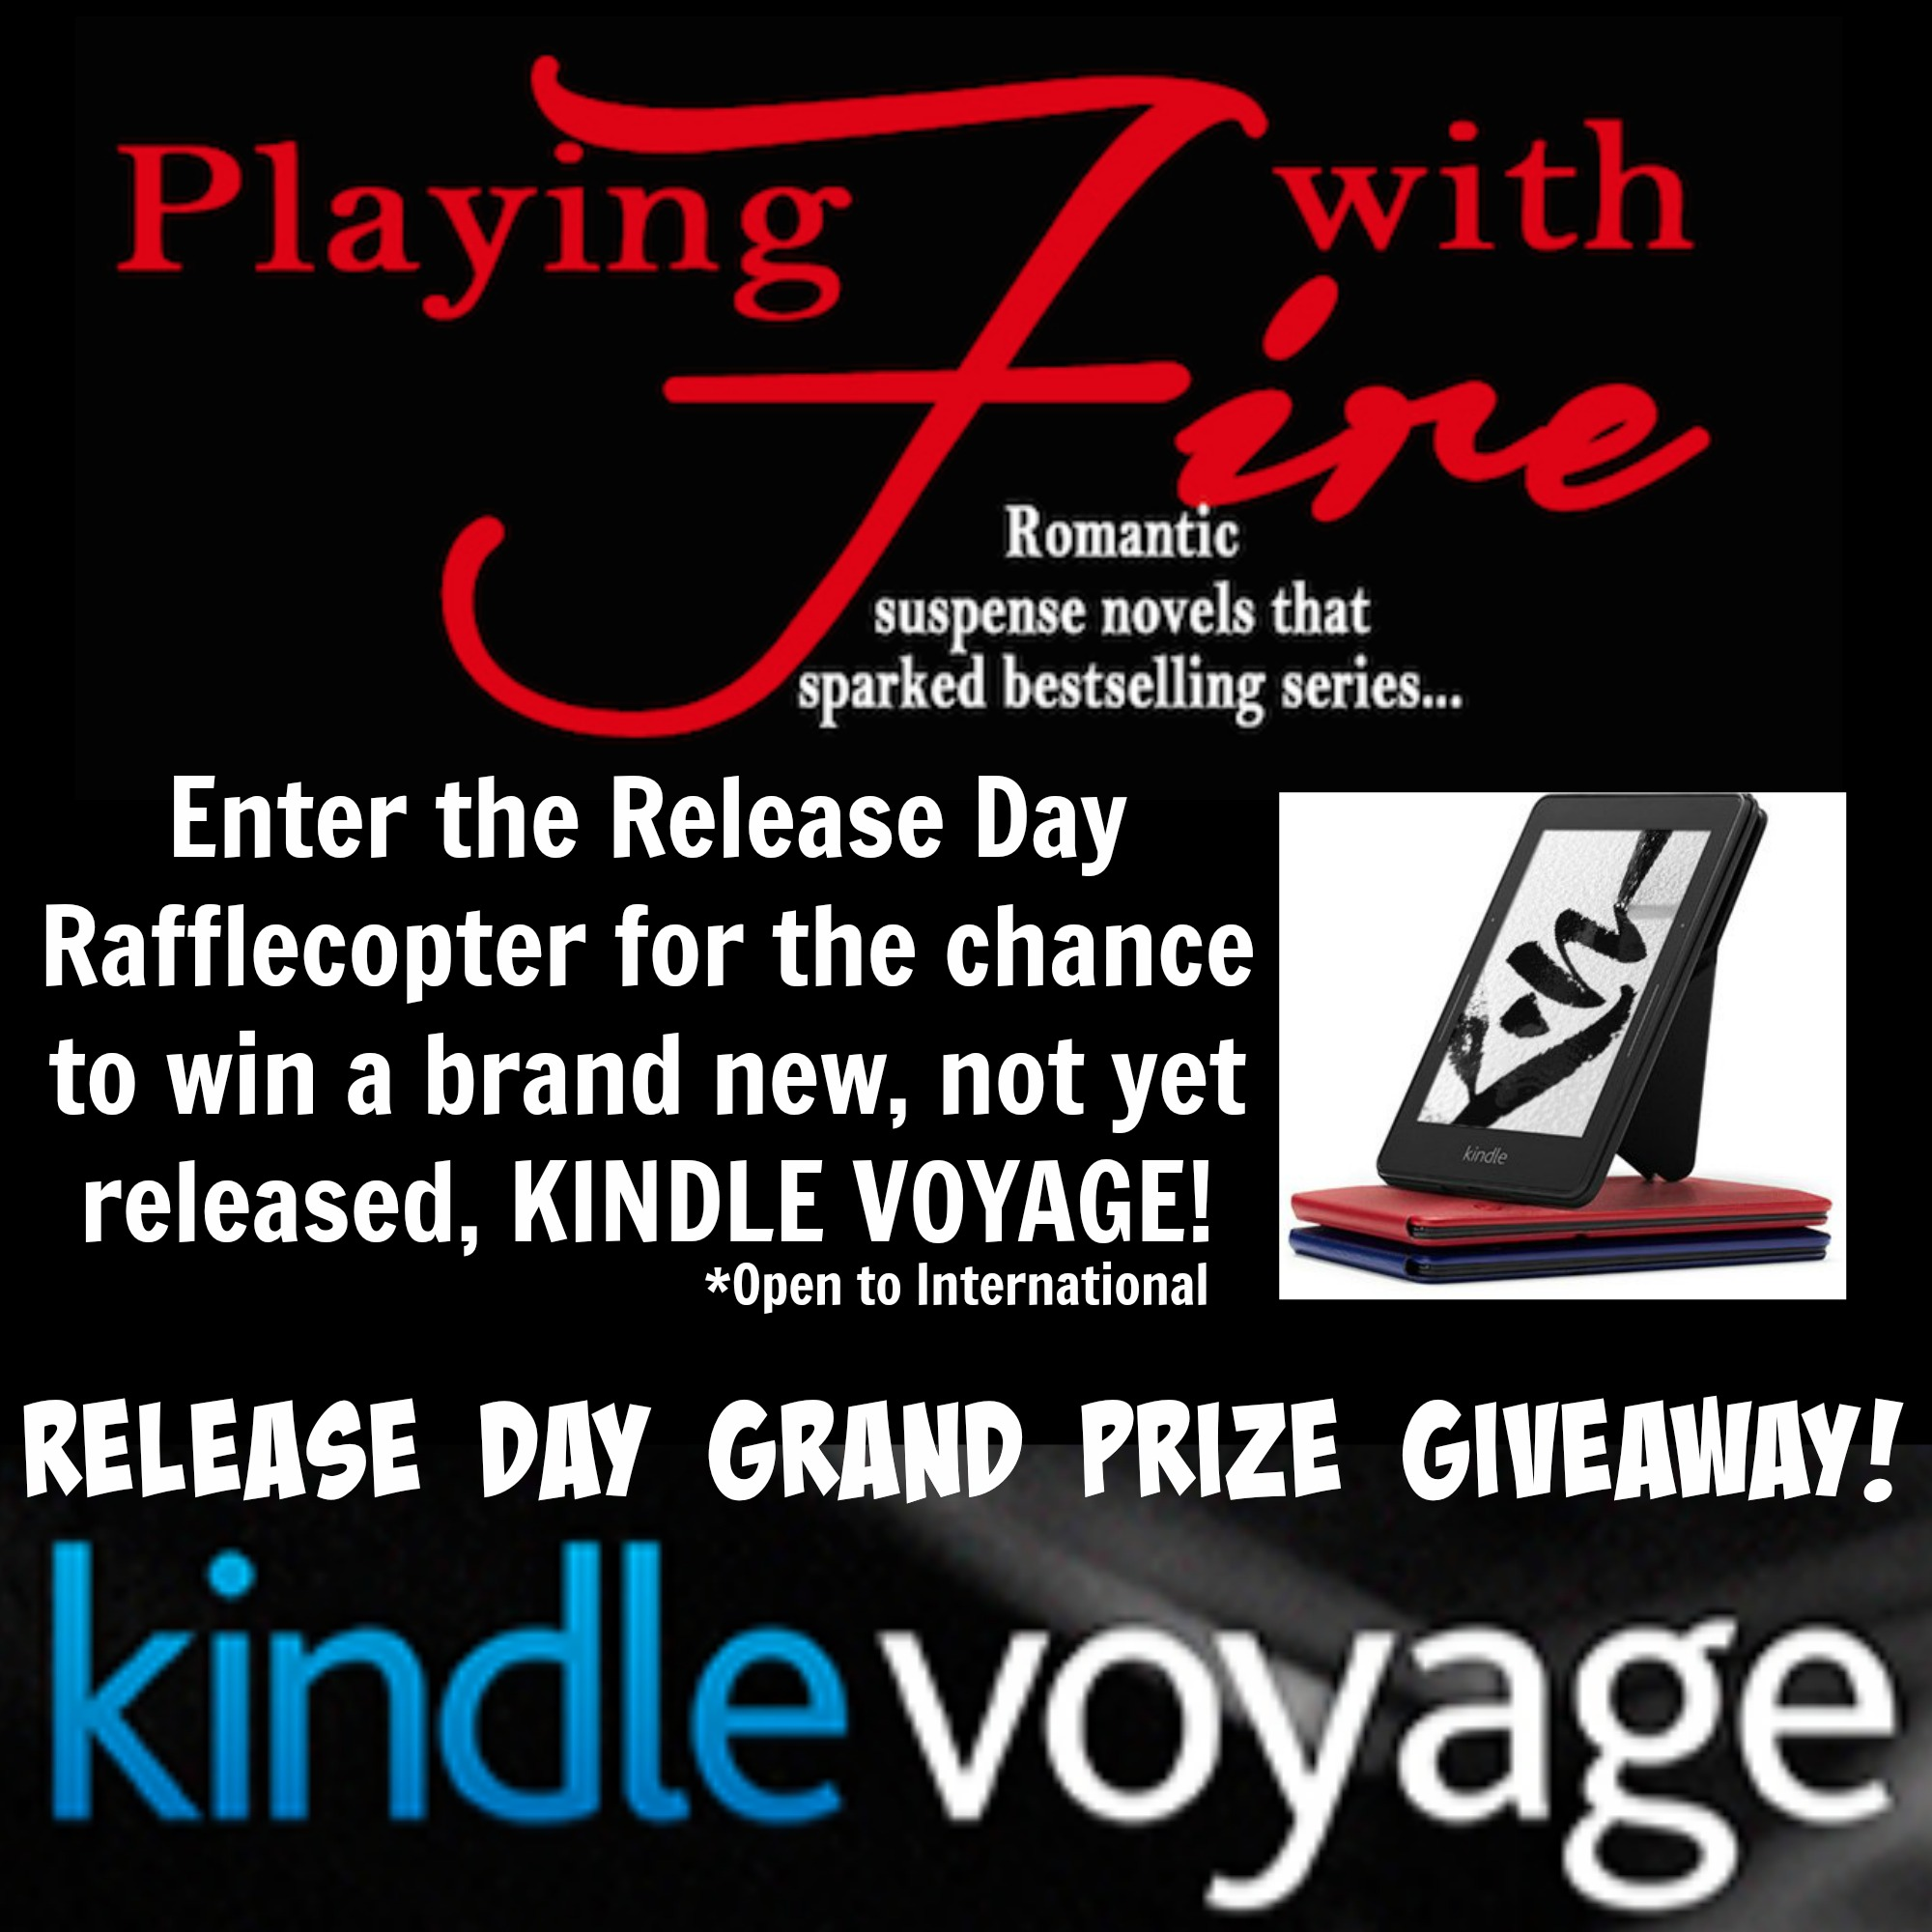 Release Day Giveaway